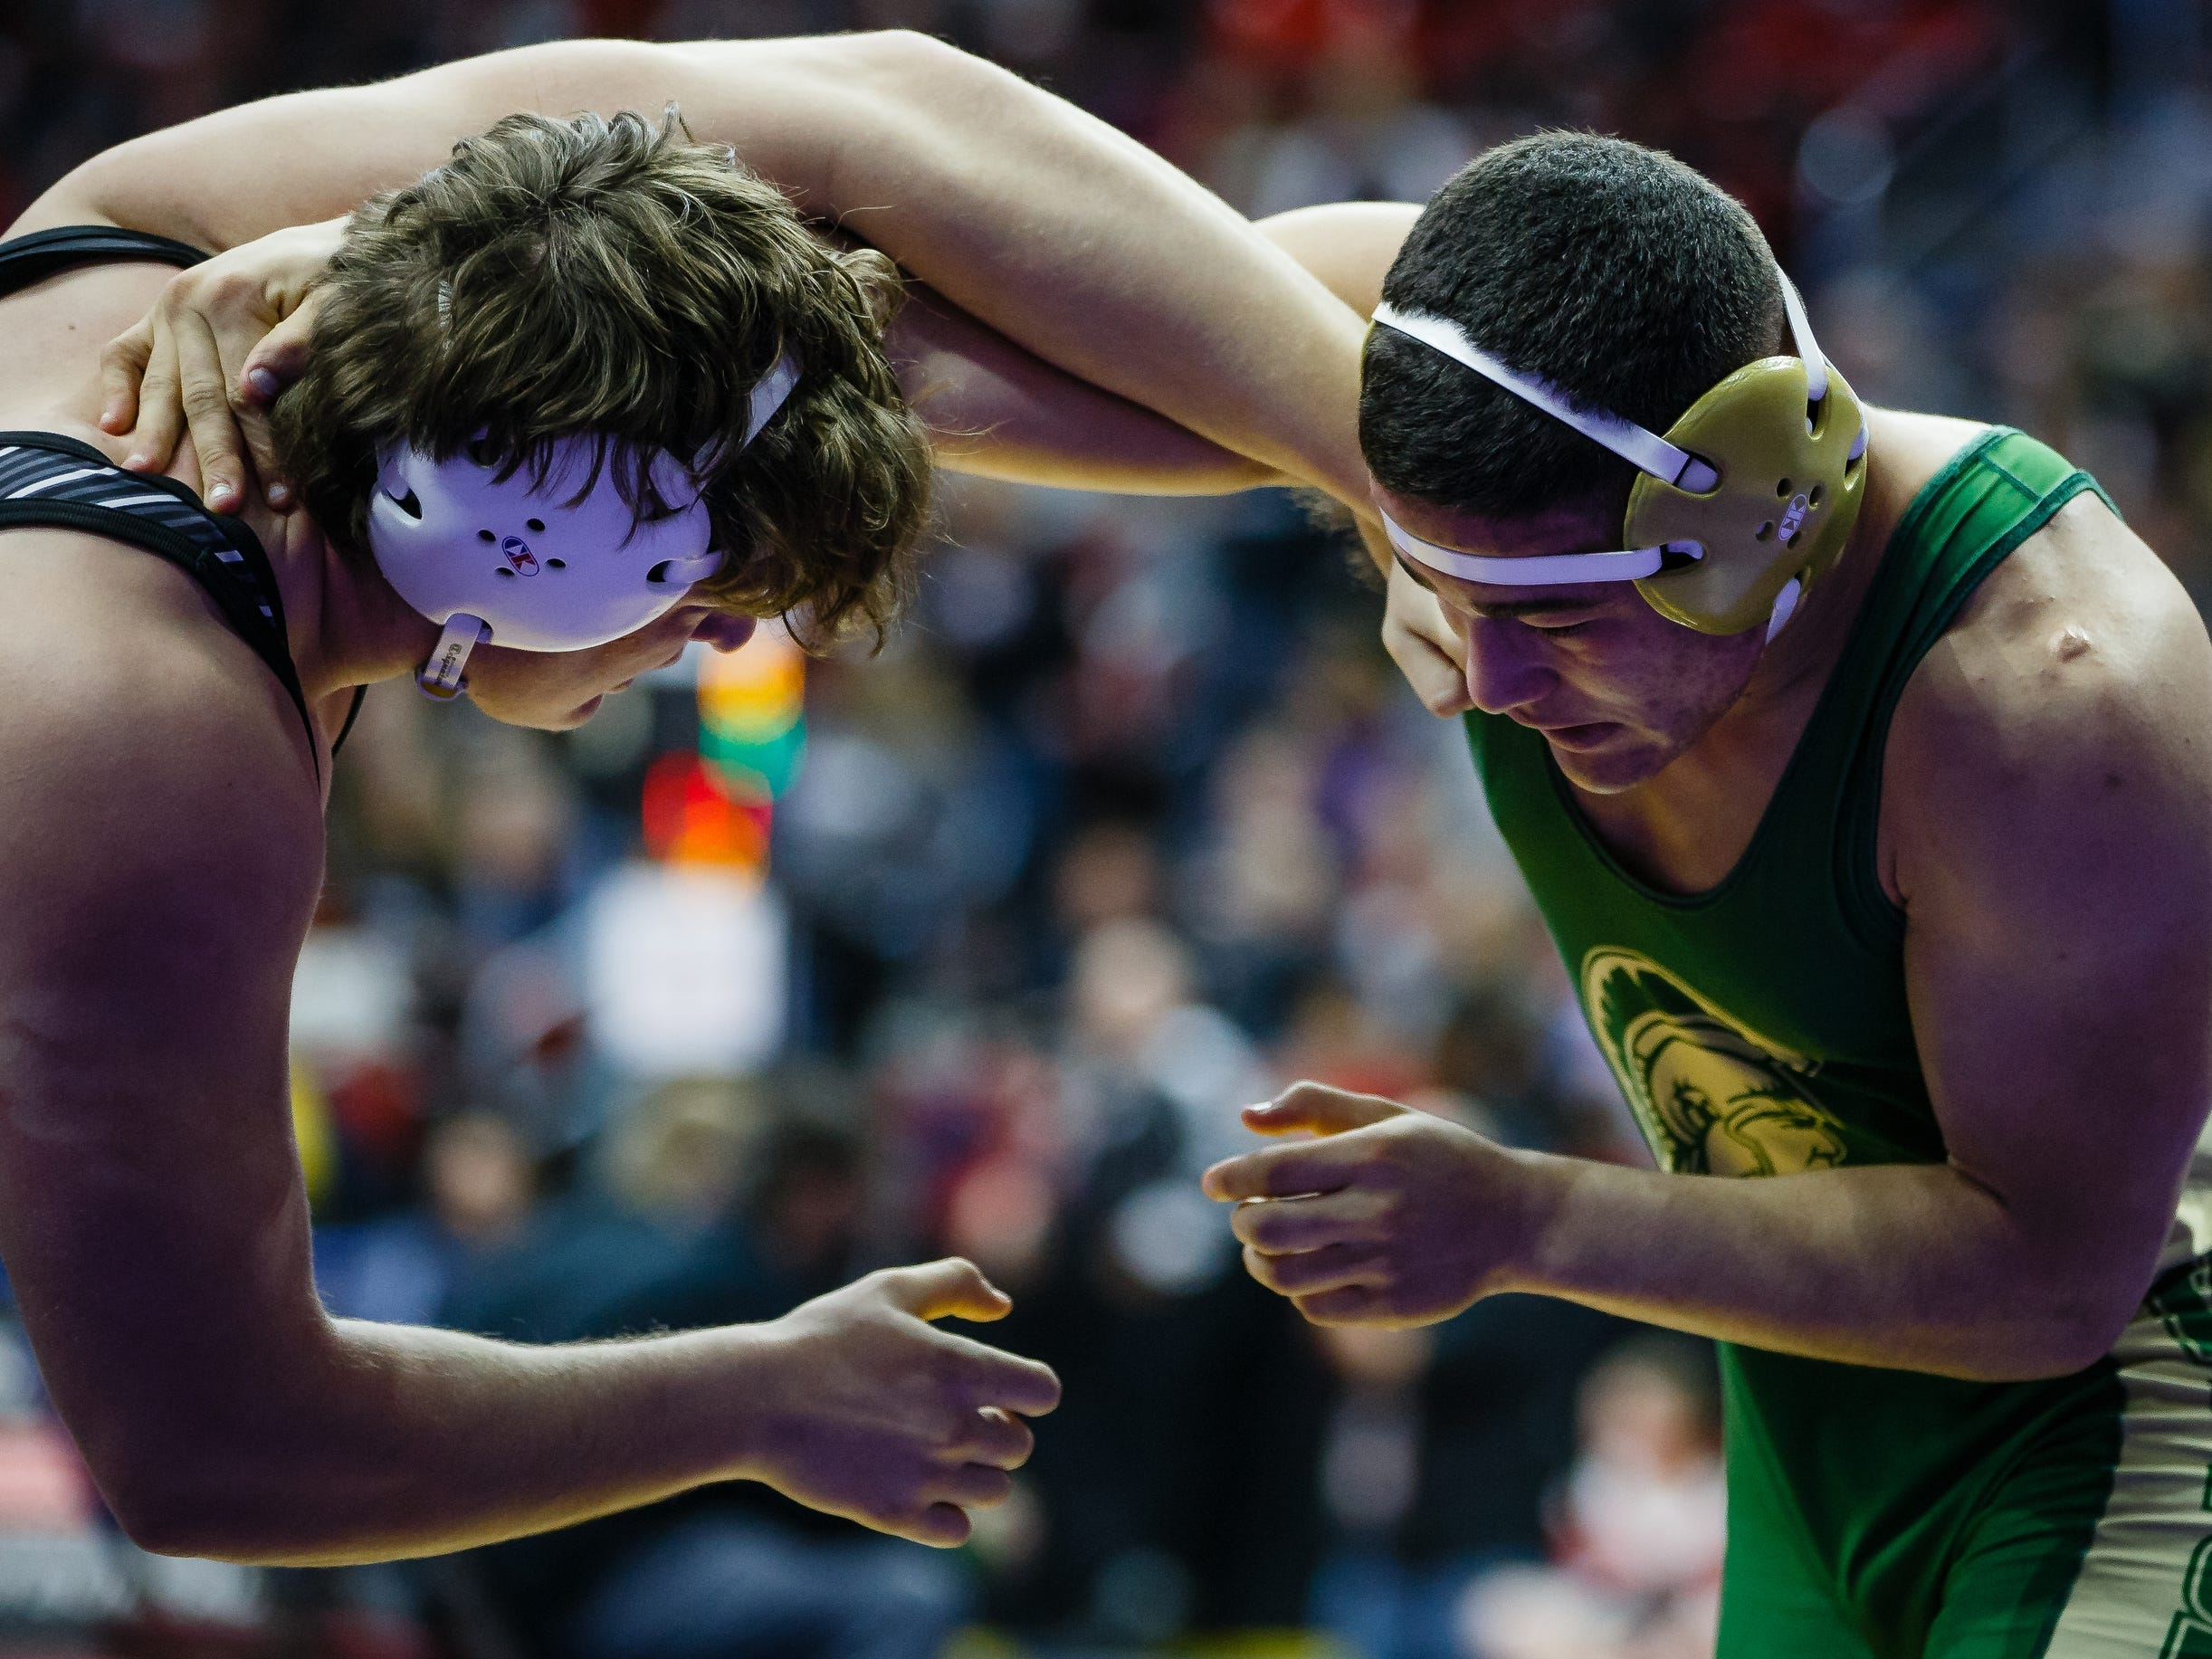 Landon Green of Iowa City, West wrestles Nate Heckart of Norwalk during their 3A 220 lb match at the state wrestling tournament on Thursday, Feb. 14, 2019 in Des Moines.